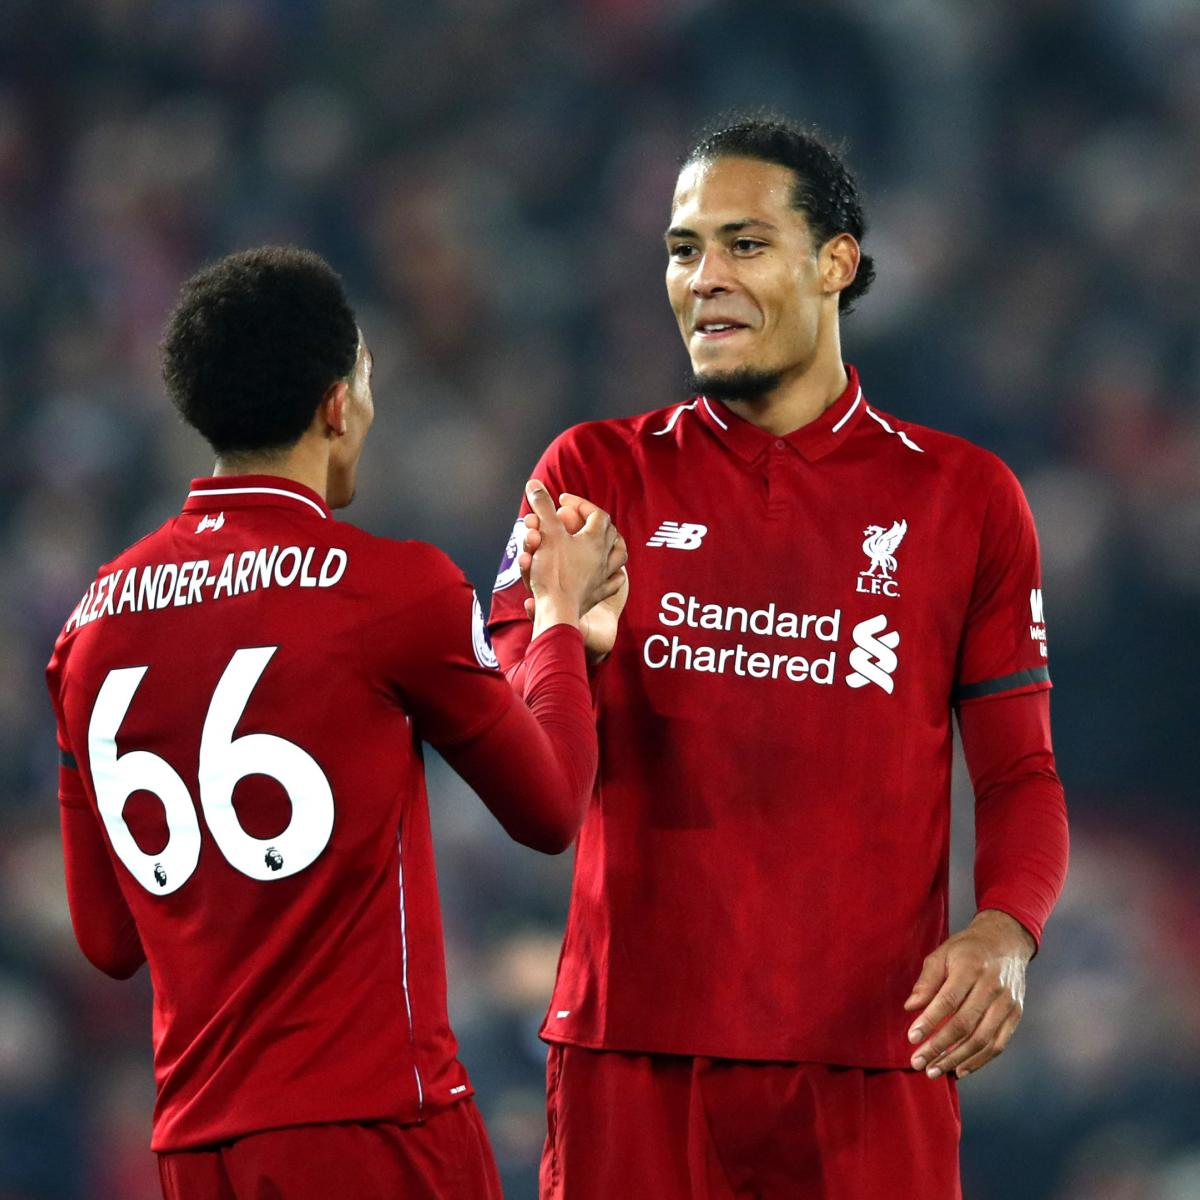 Epl table 2019 week 28 standings after wednesday 39 s - Barclays premier league ranking table ...